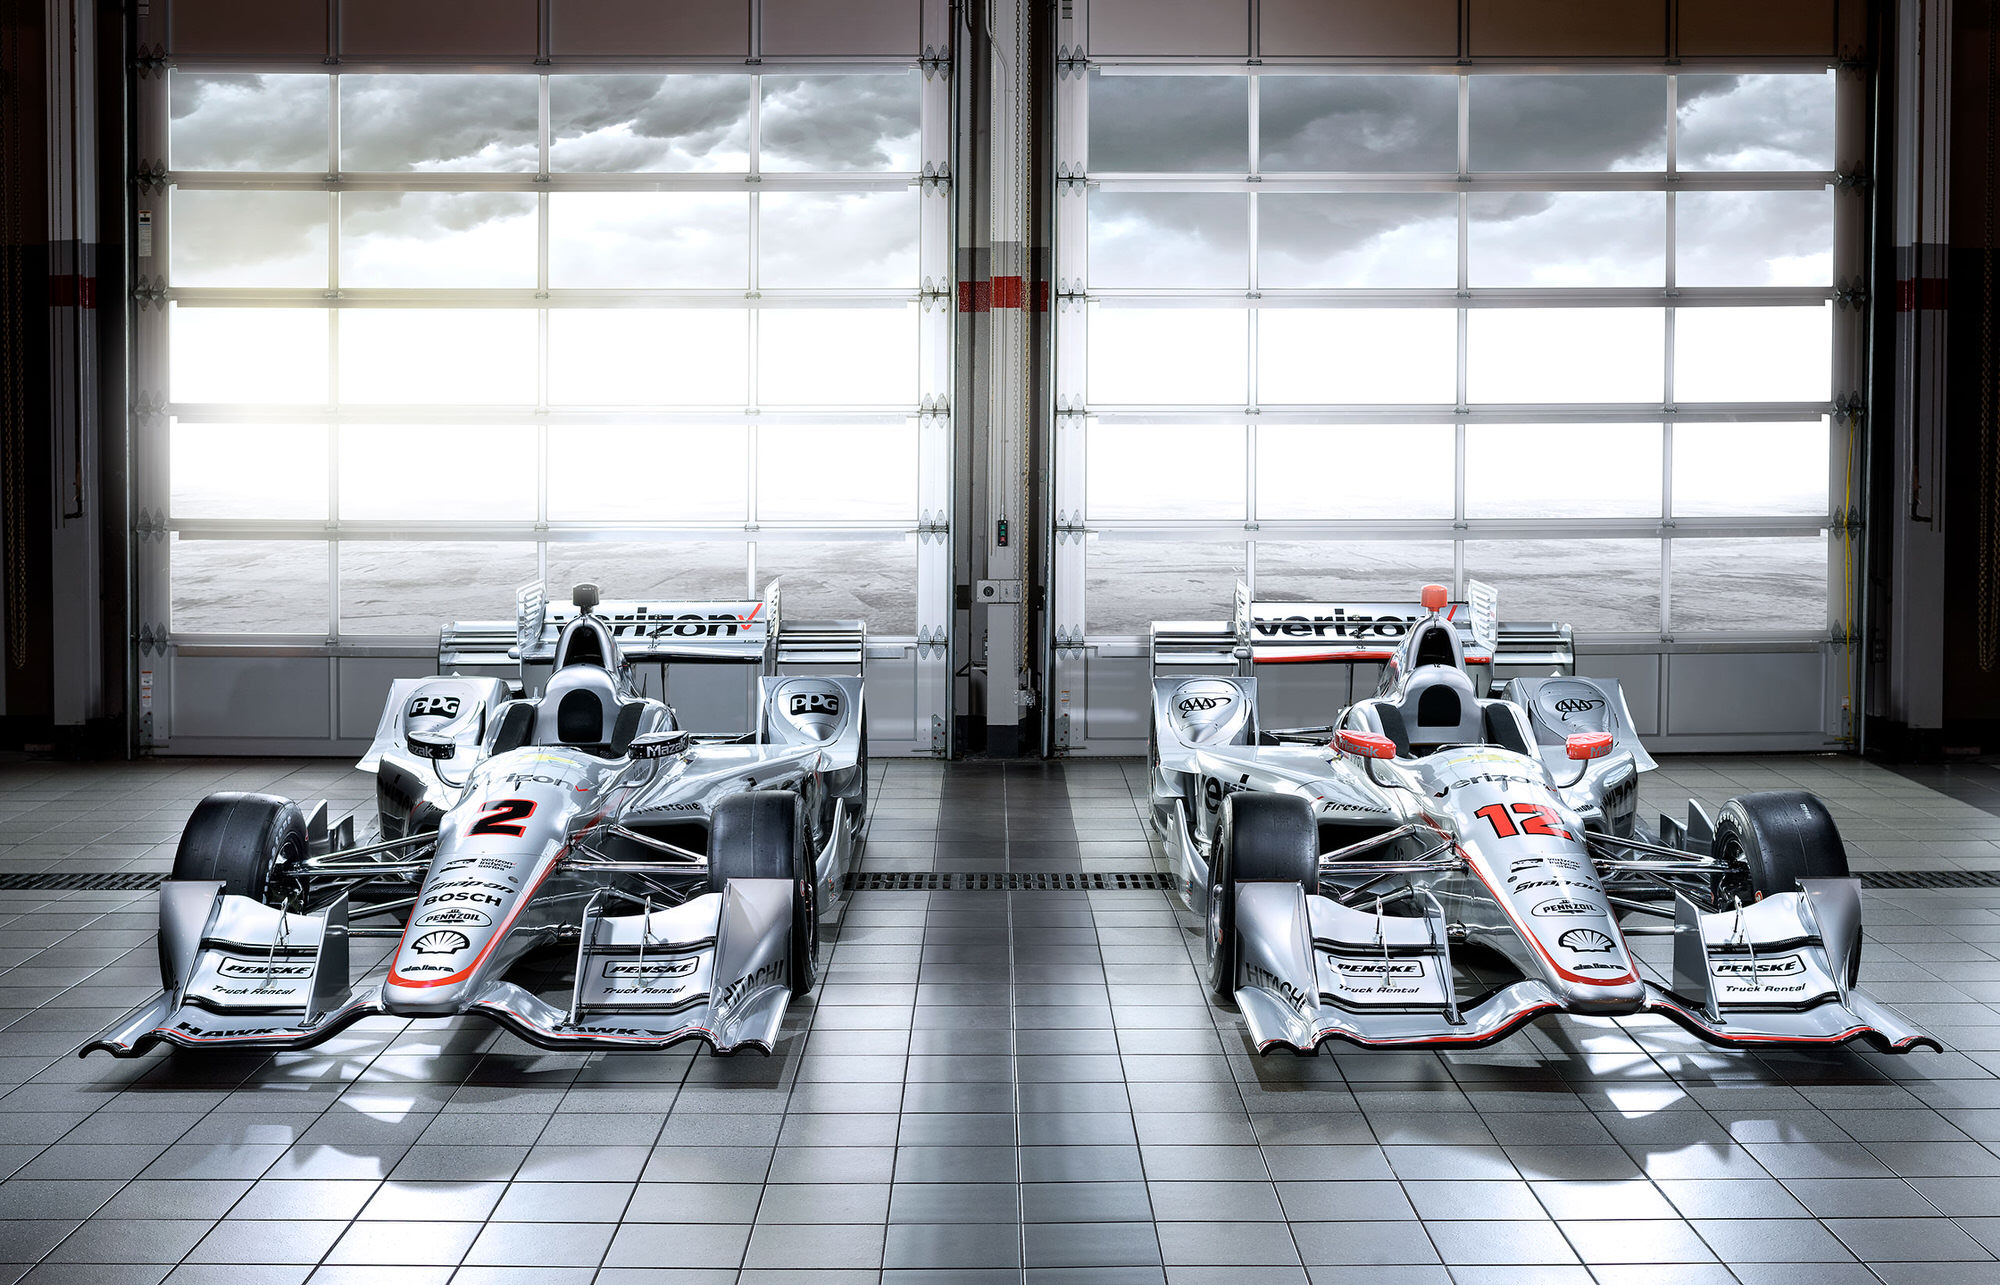 Team Penske Verizon IndyCar racecars Juan Pablo Montoya and Will Power